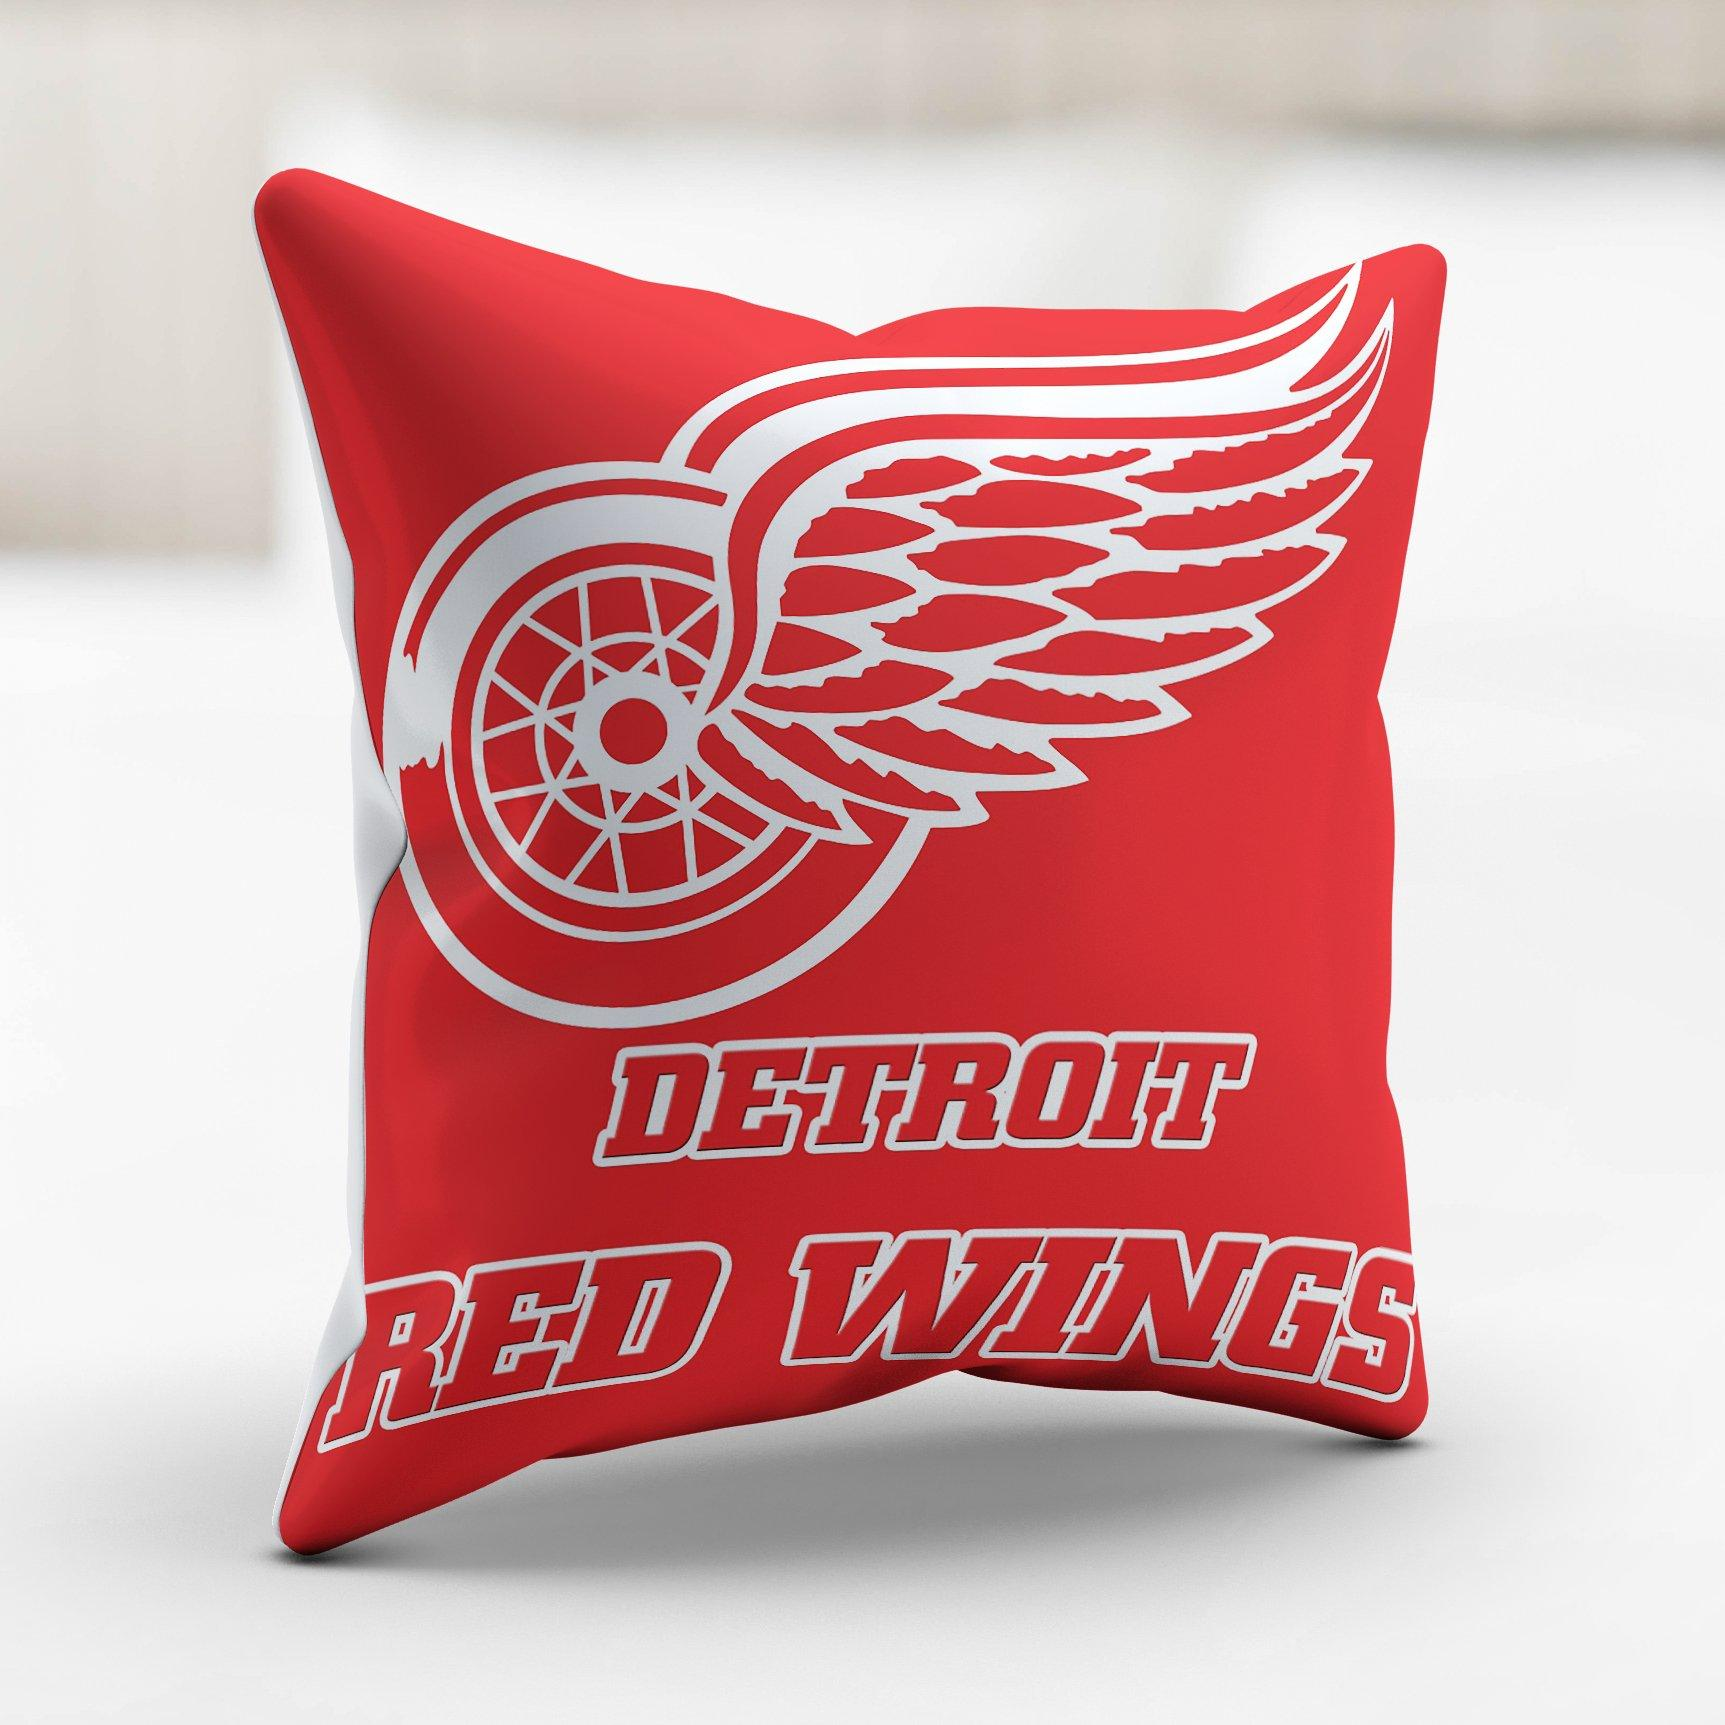 Detroit Collector Pillowcase